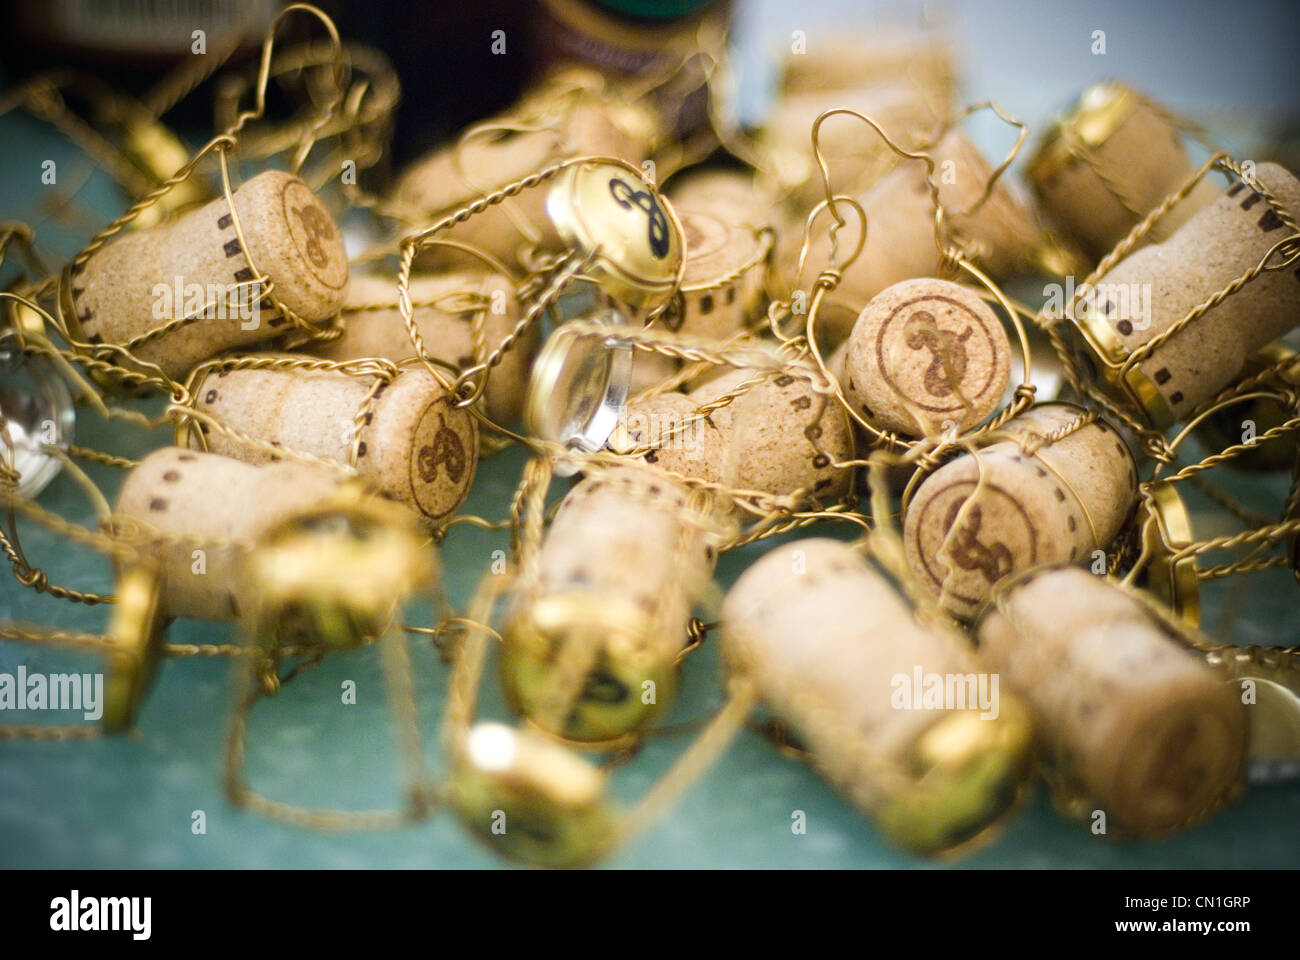 Pile of Discarded Corks - Stock Image